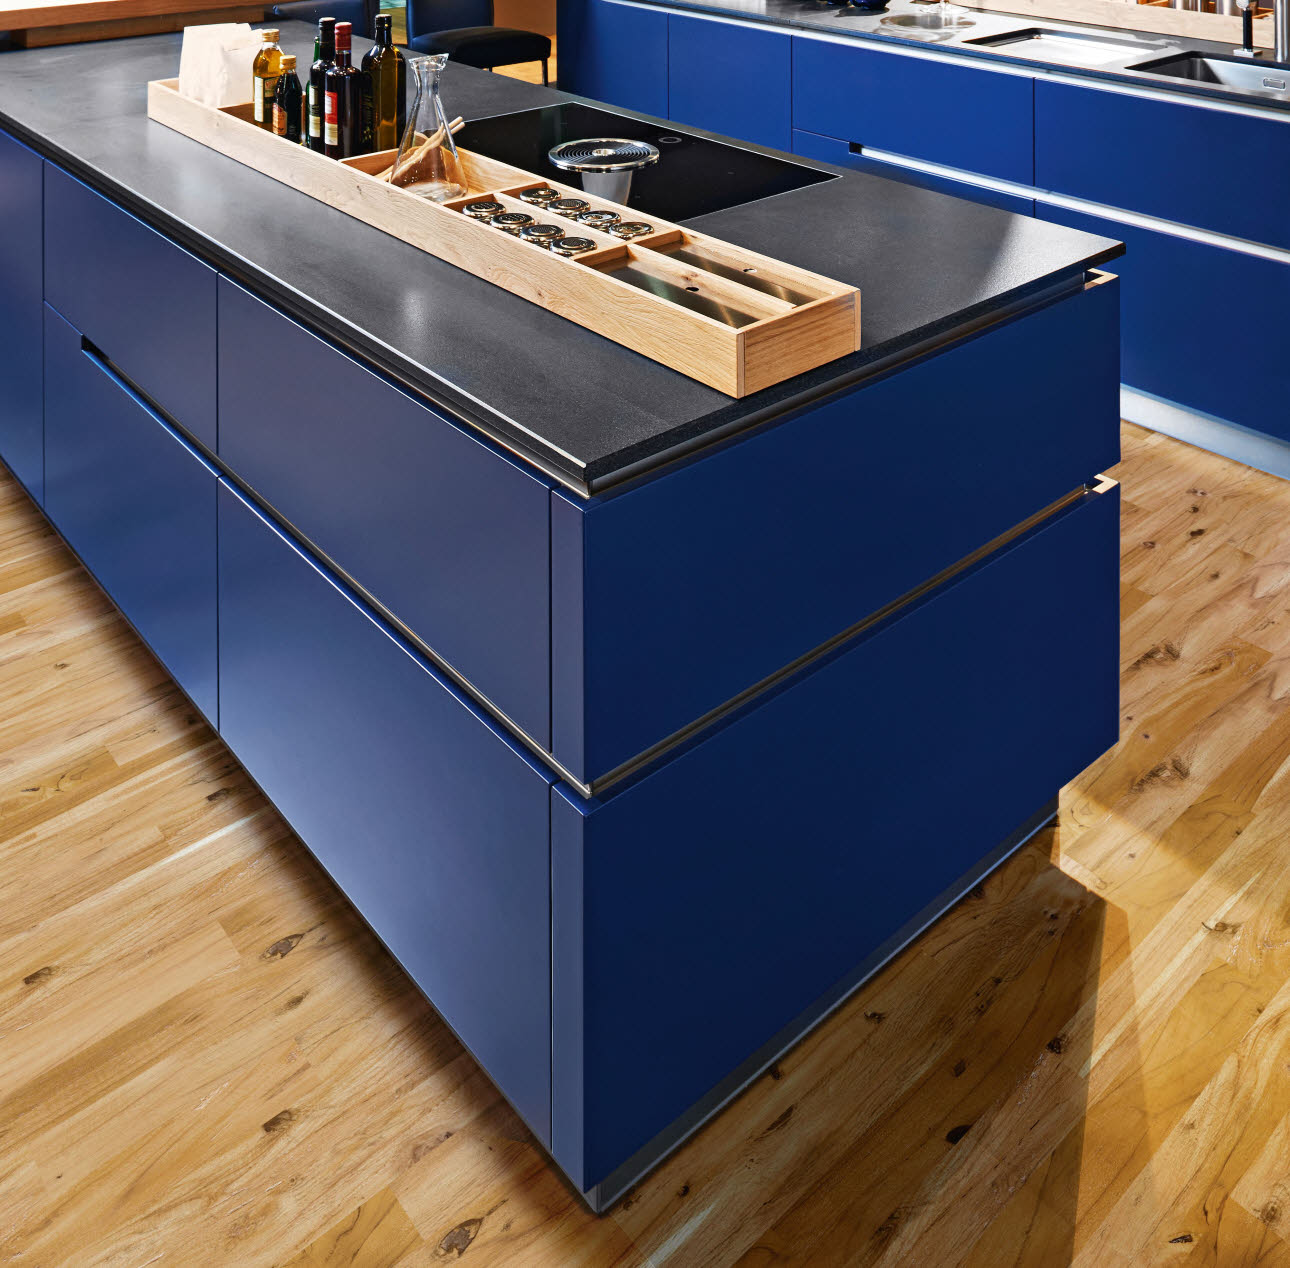 ewe kitchen Vida - blue model